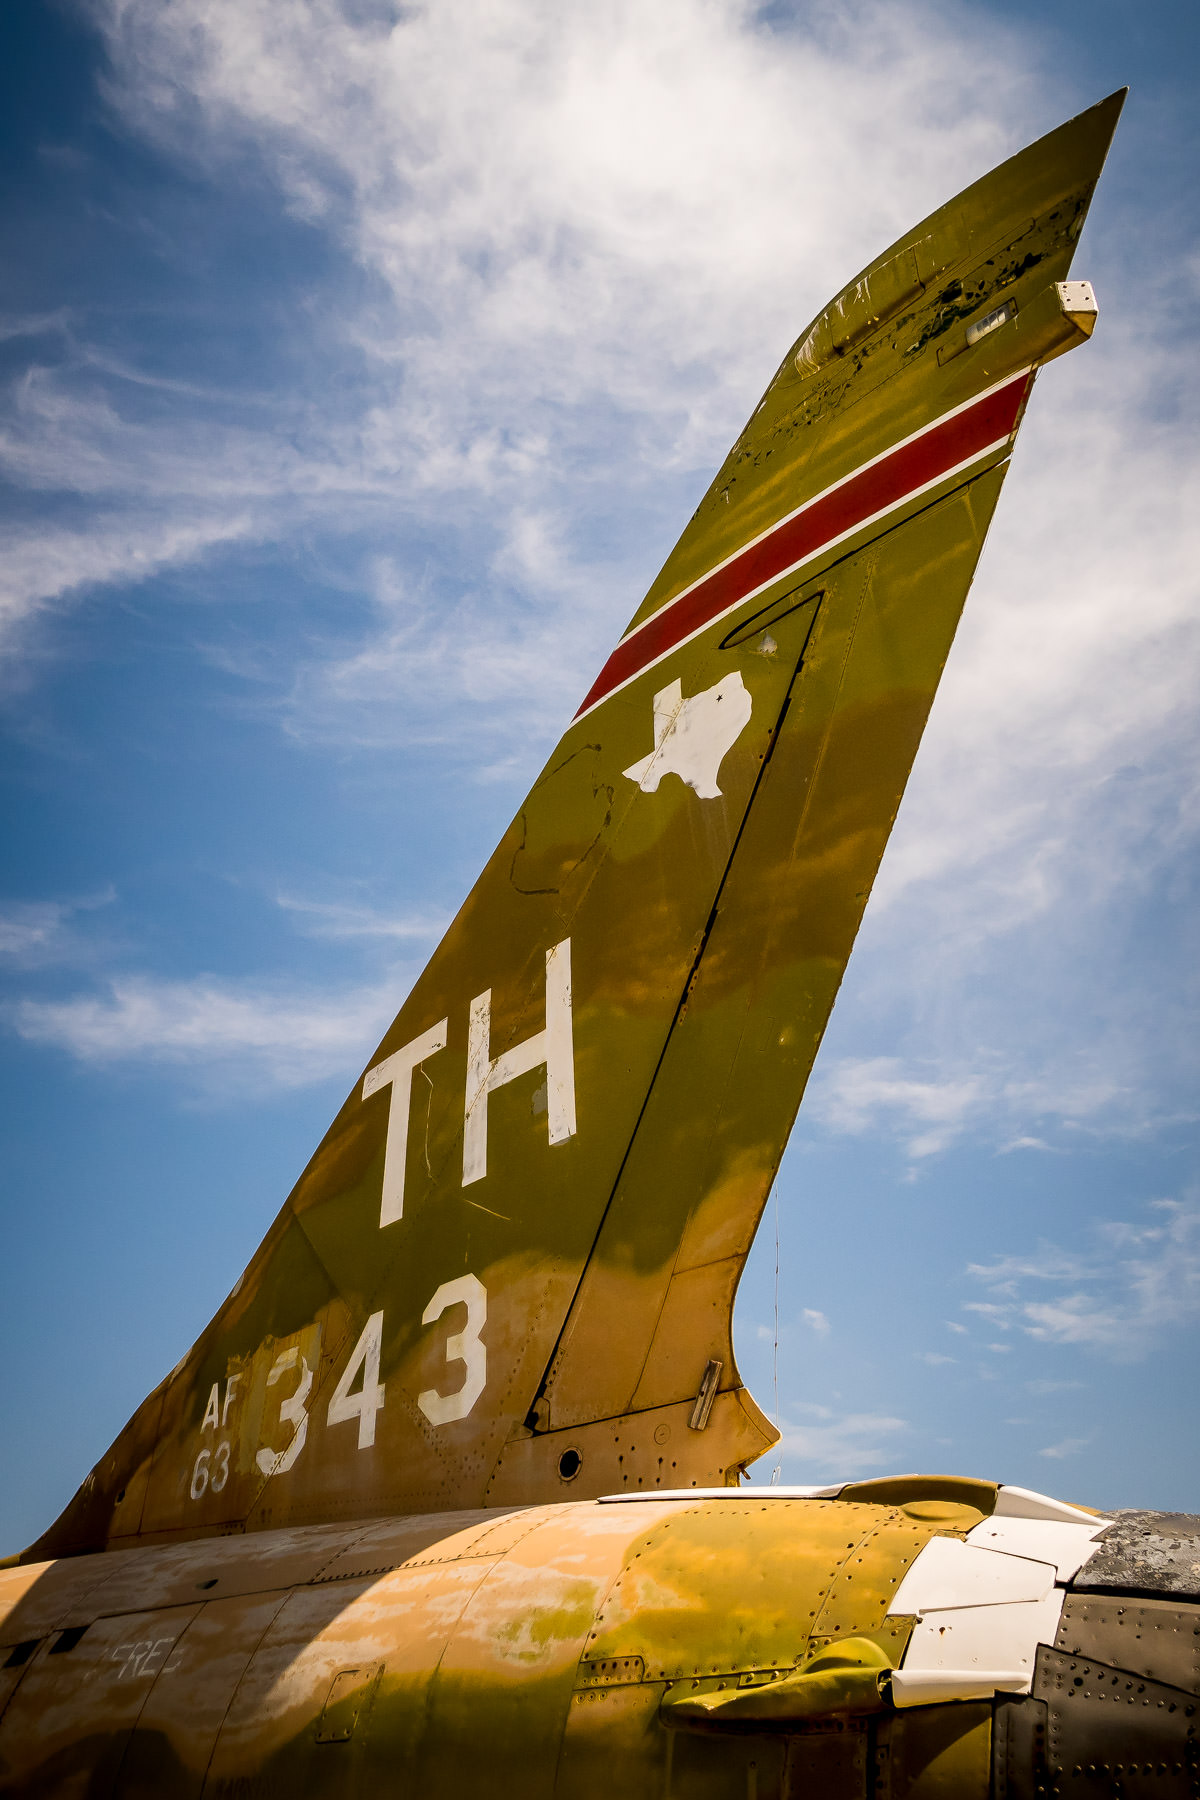 The tail of a Republic F-105 Thunderchief on display at Addison, Texas' Cavanaugh Flight Museum.